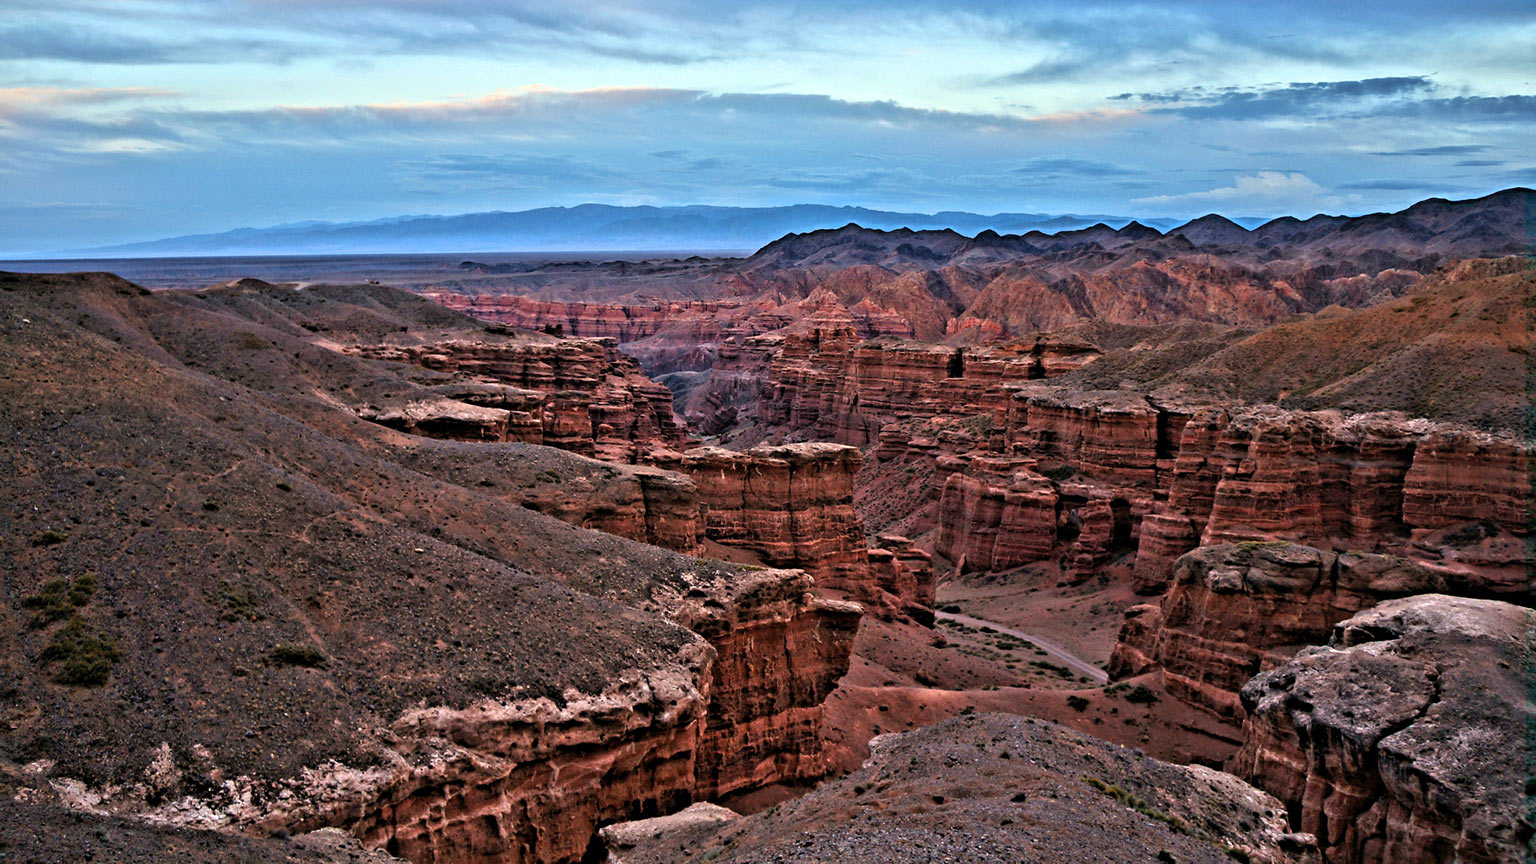 Multistan-Charyn-Canyon-Kazak-2-flickr-user-Mr-Hicks46